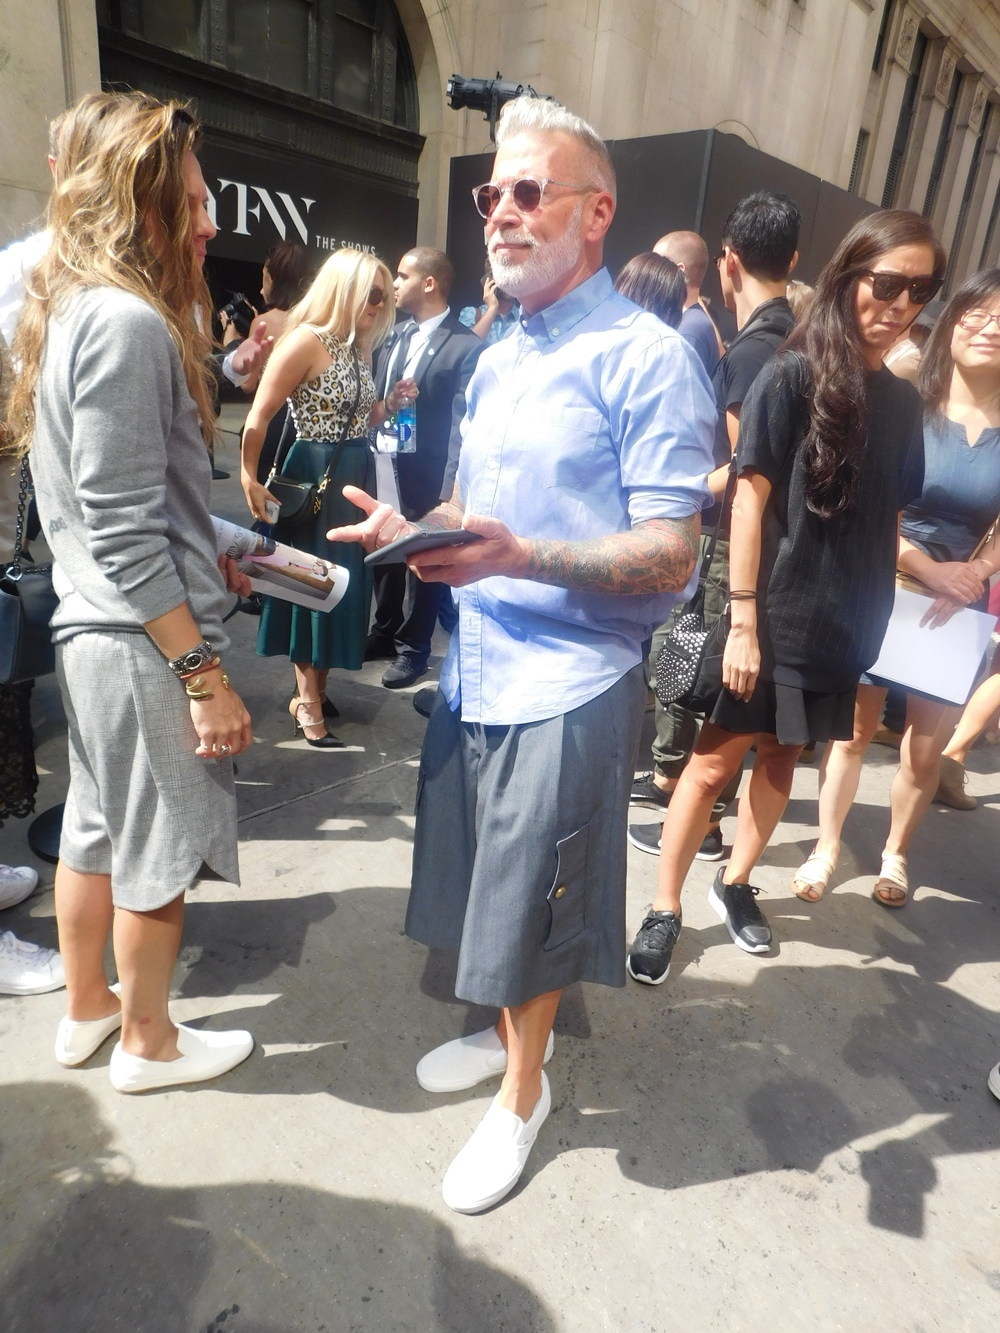 Nick Wooster being Fly as usual.